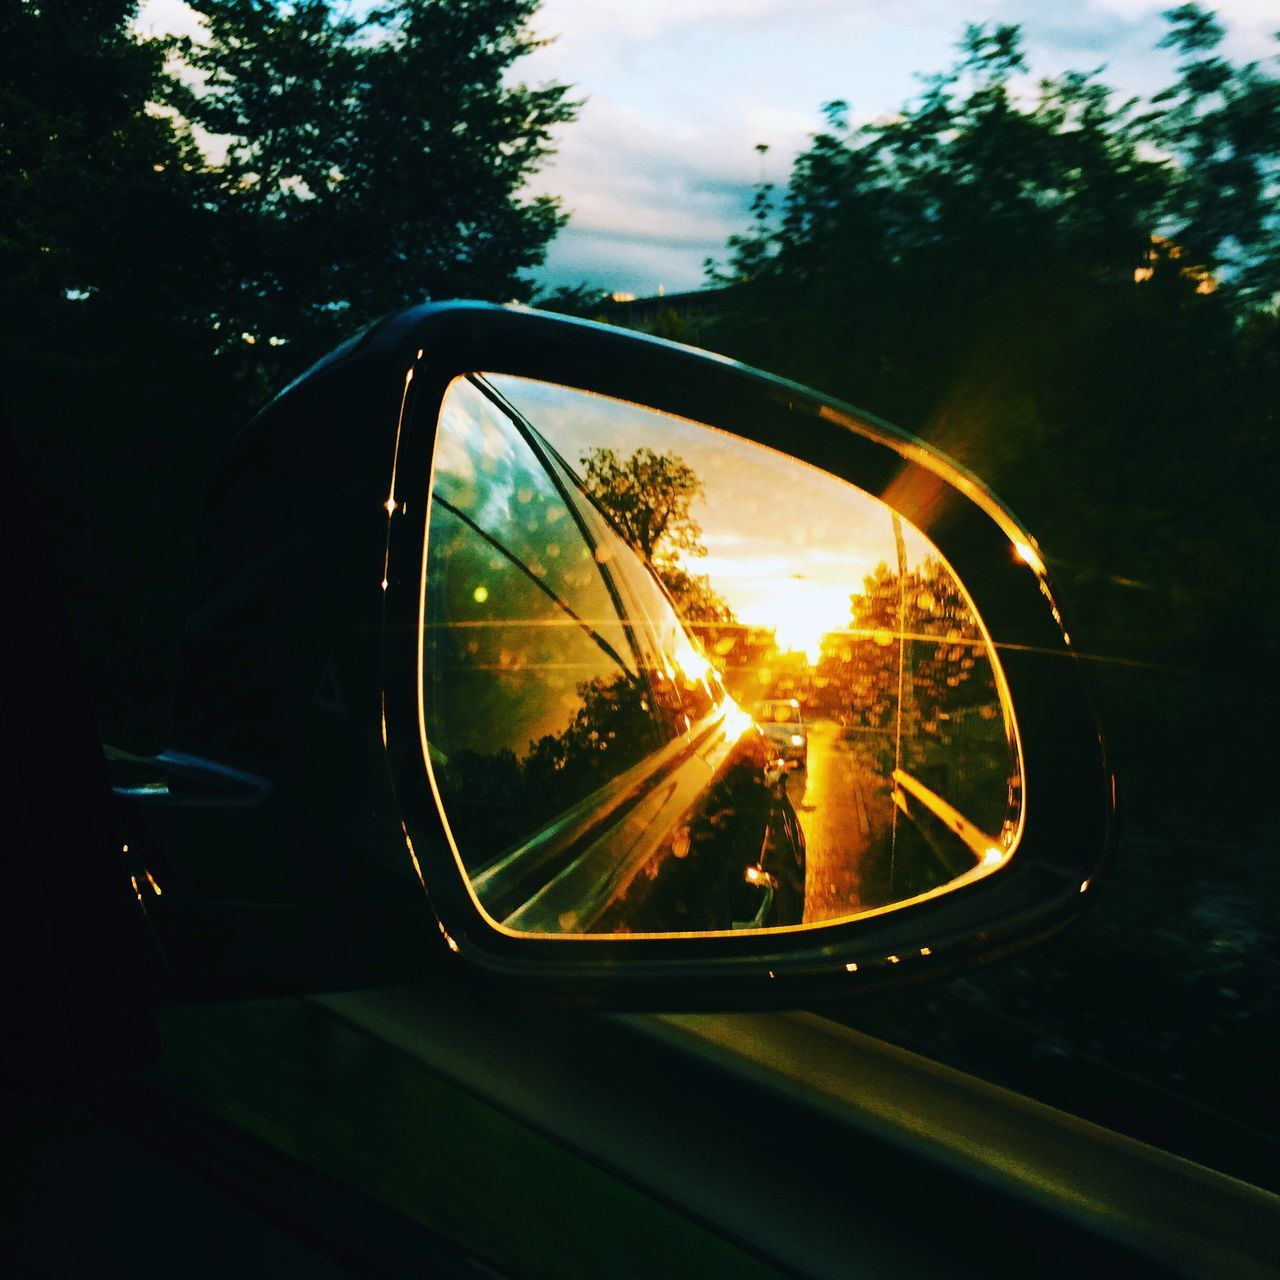 Reflection Of Sunlight In Side-View Mirror